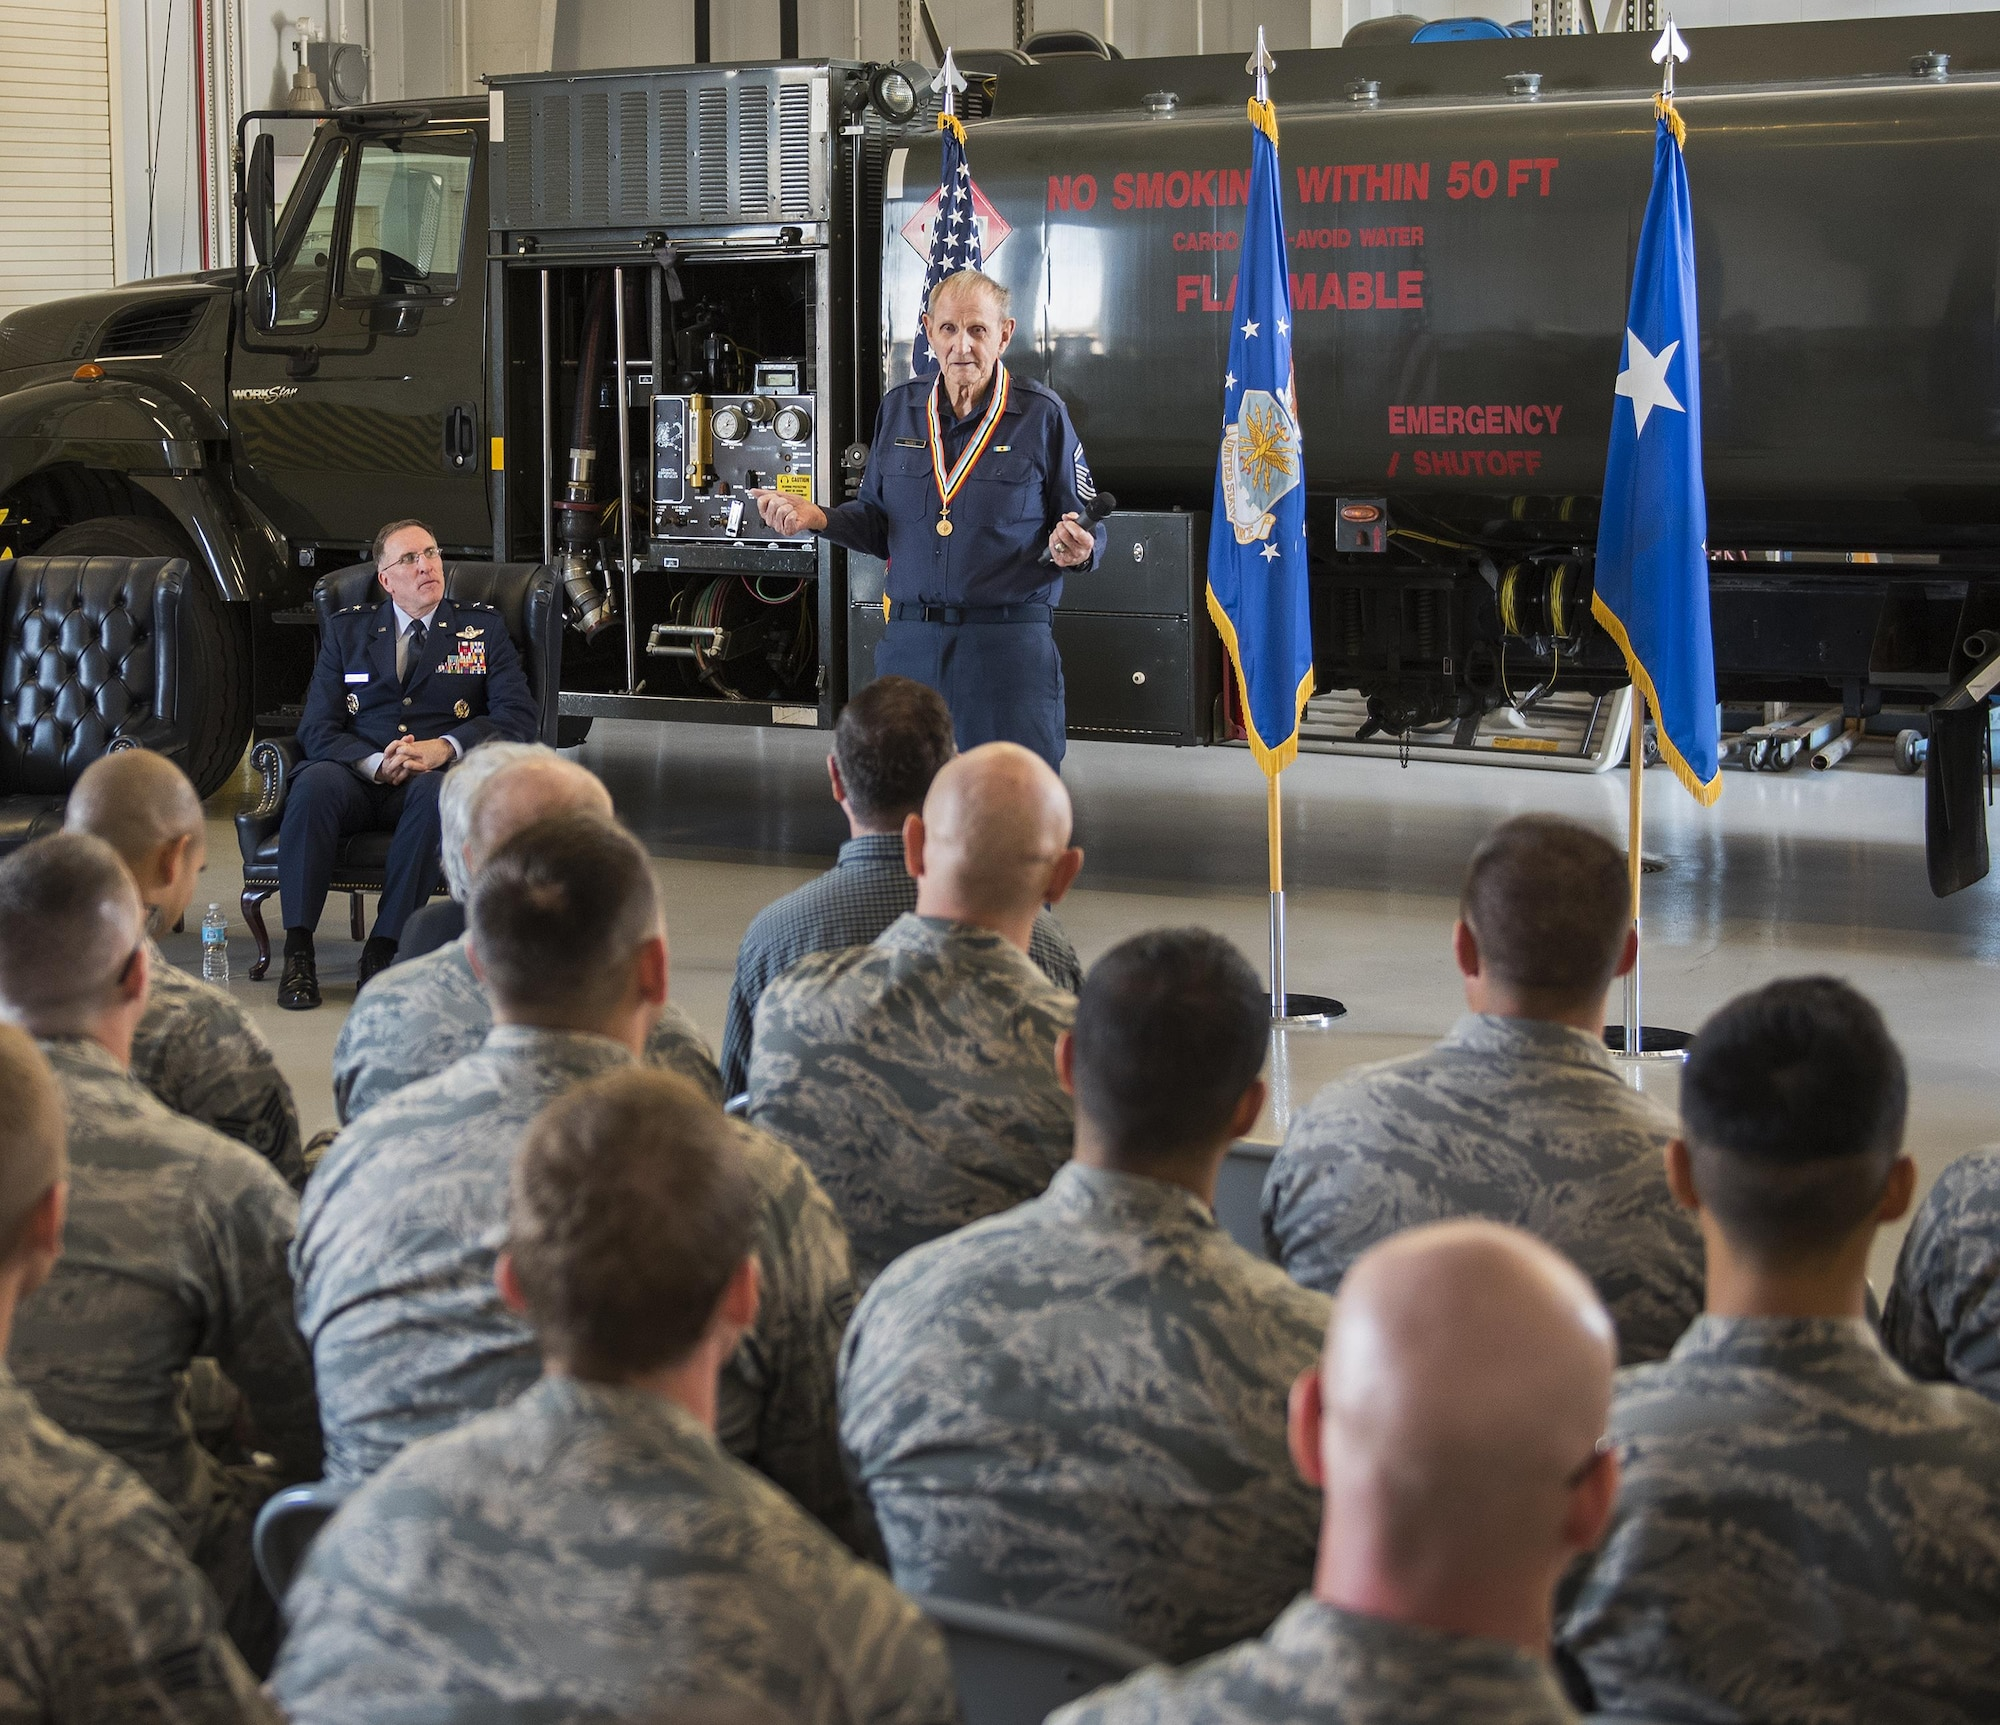 Retired Chief Master Sgt. Russell Rhodes speaks to an audience after receiving the Korean Ambassador for Peace Medal at Eglin Air Force Base, Fla., Nov. 15, 2016. The 85-year-old Rhodes requested the medal ceremony be held at the base's fuels flight, where Rhodes was stationed during his Air Force career as a fuel truck driver. (U.S. Air Force photo/Samuel King Jr.)